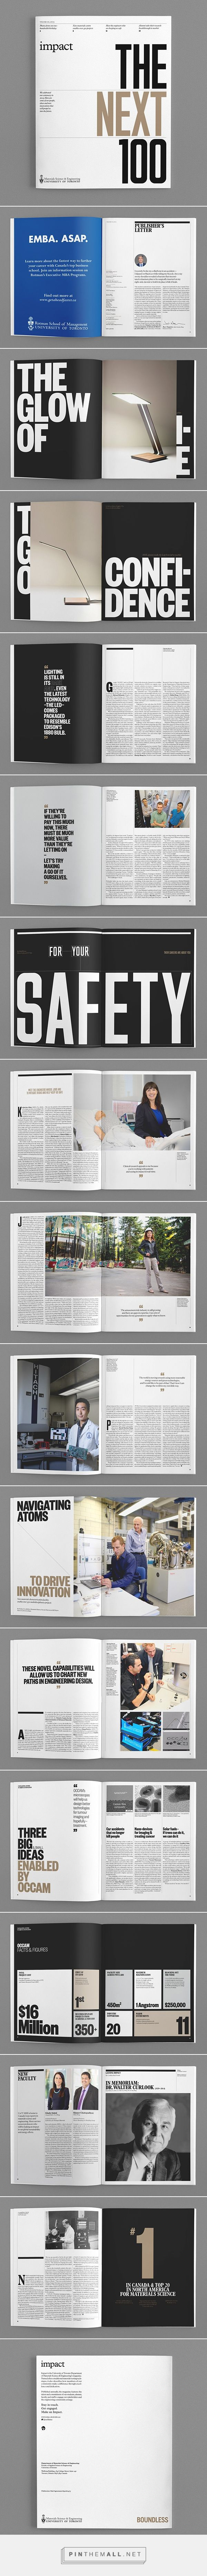 What do you think about lines between the columns? -- Impact Magazine, Issue 3